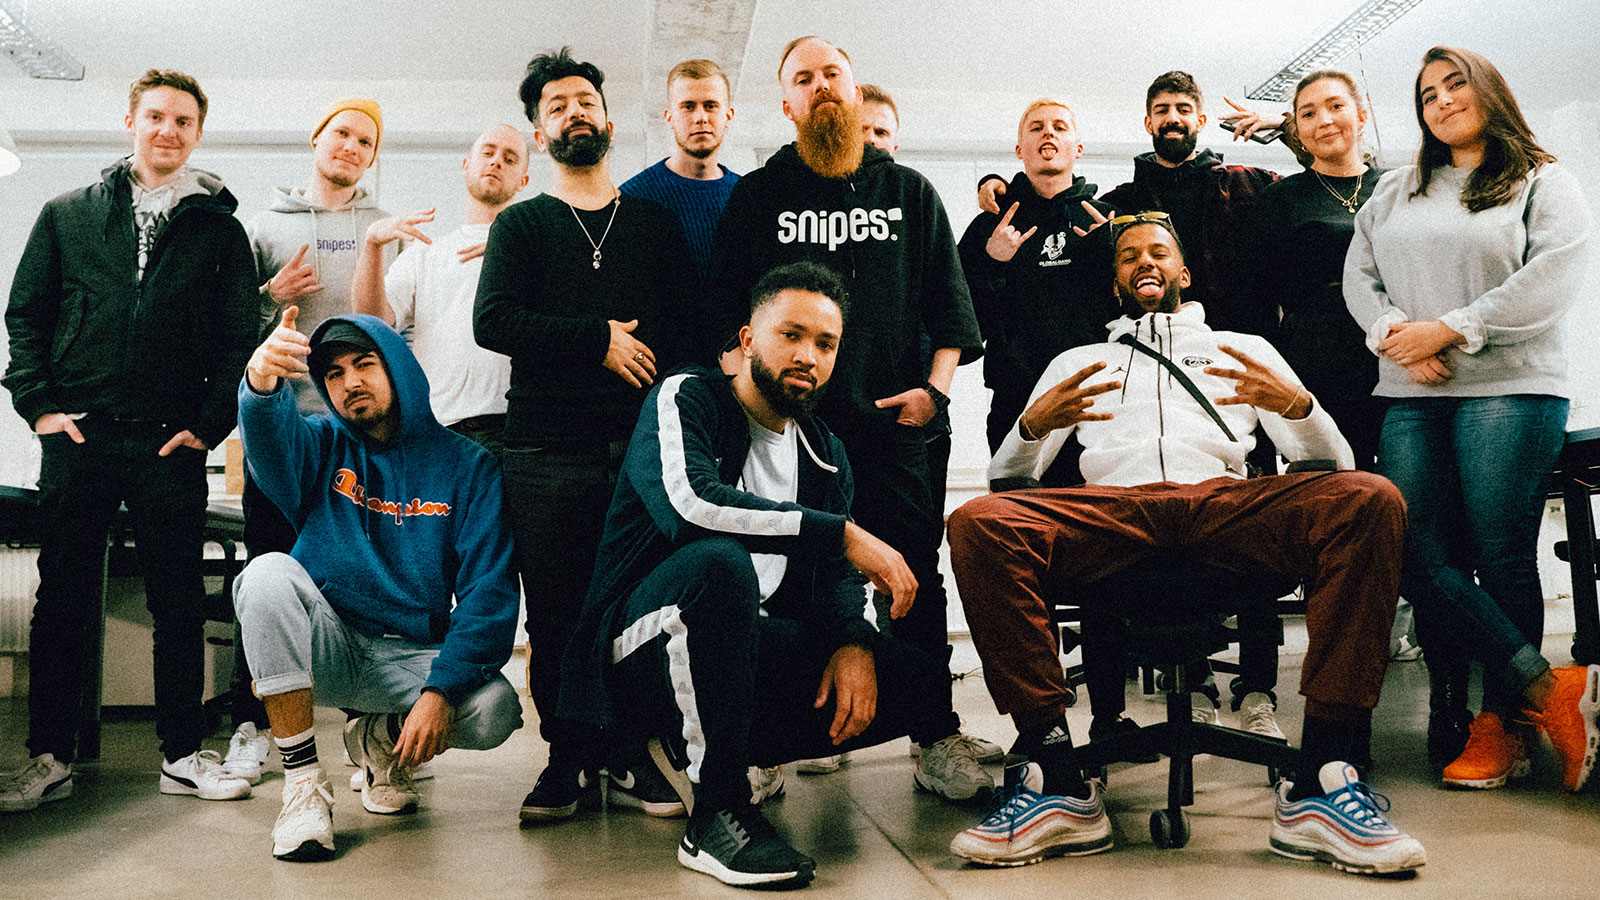 Bester Live-Act und Bester Rap-Solo-Act National – Hiphop.de Awards 2019